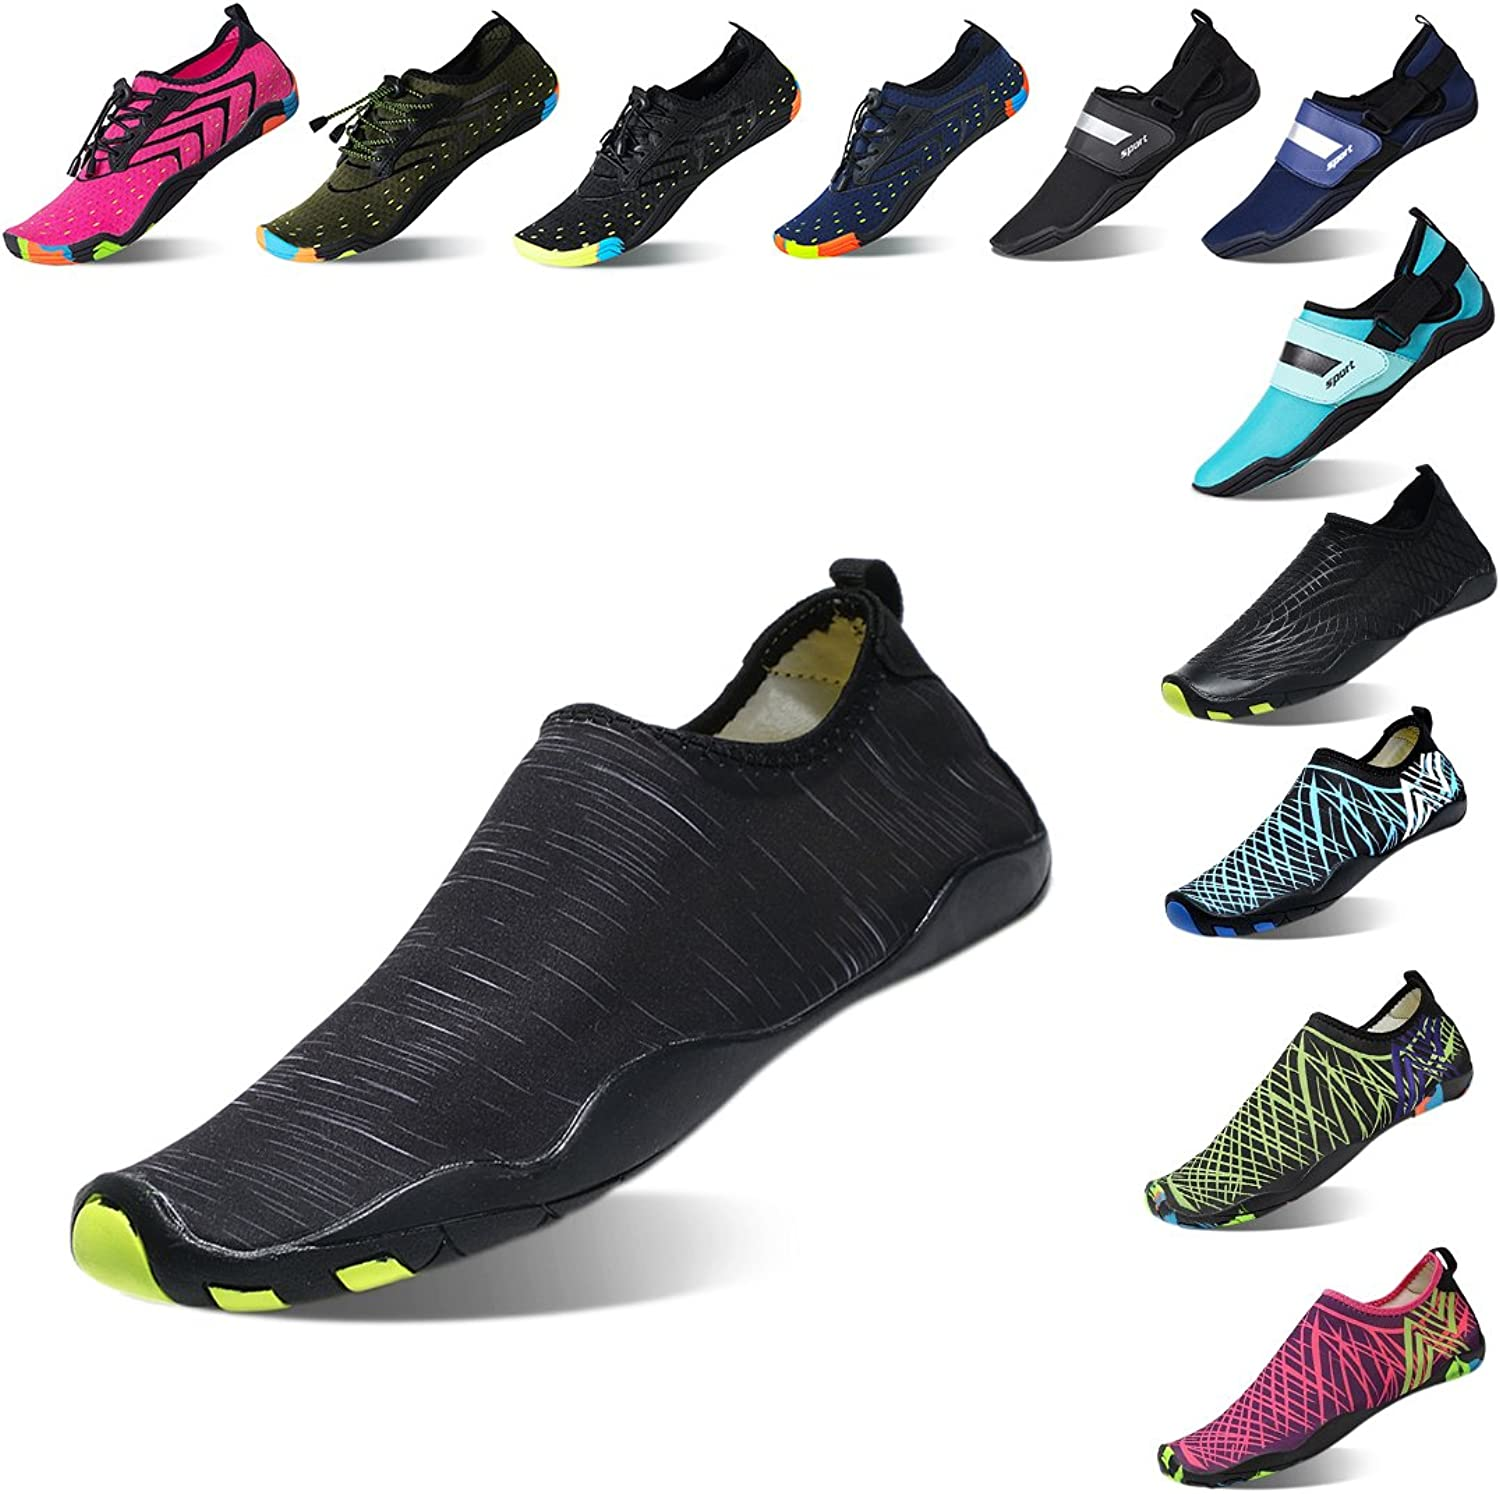 Lauwodun Womens and Mens Quick Dry Water shoes Barefoot Aqua Sock shoes for Beach Surfing Yoga Running Exercise-3black42